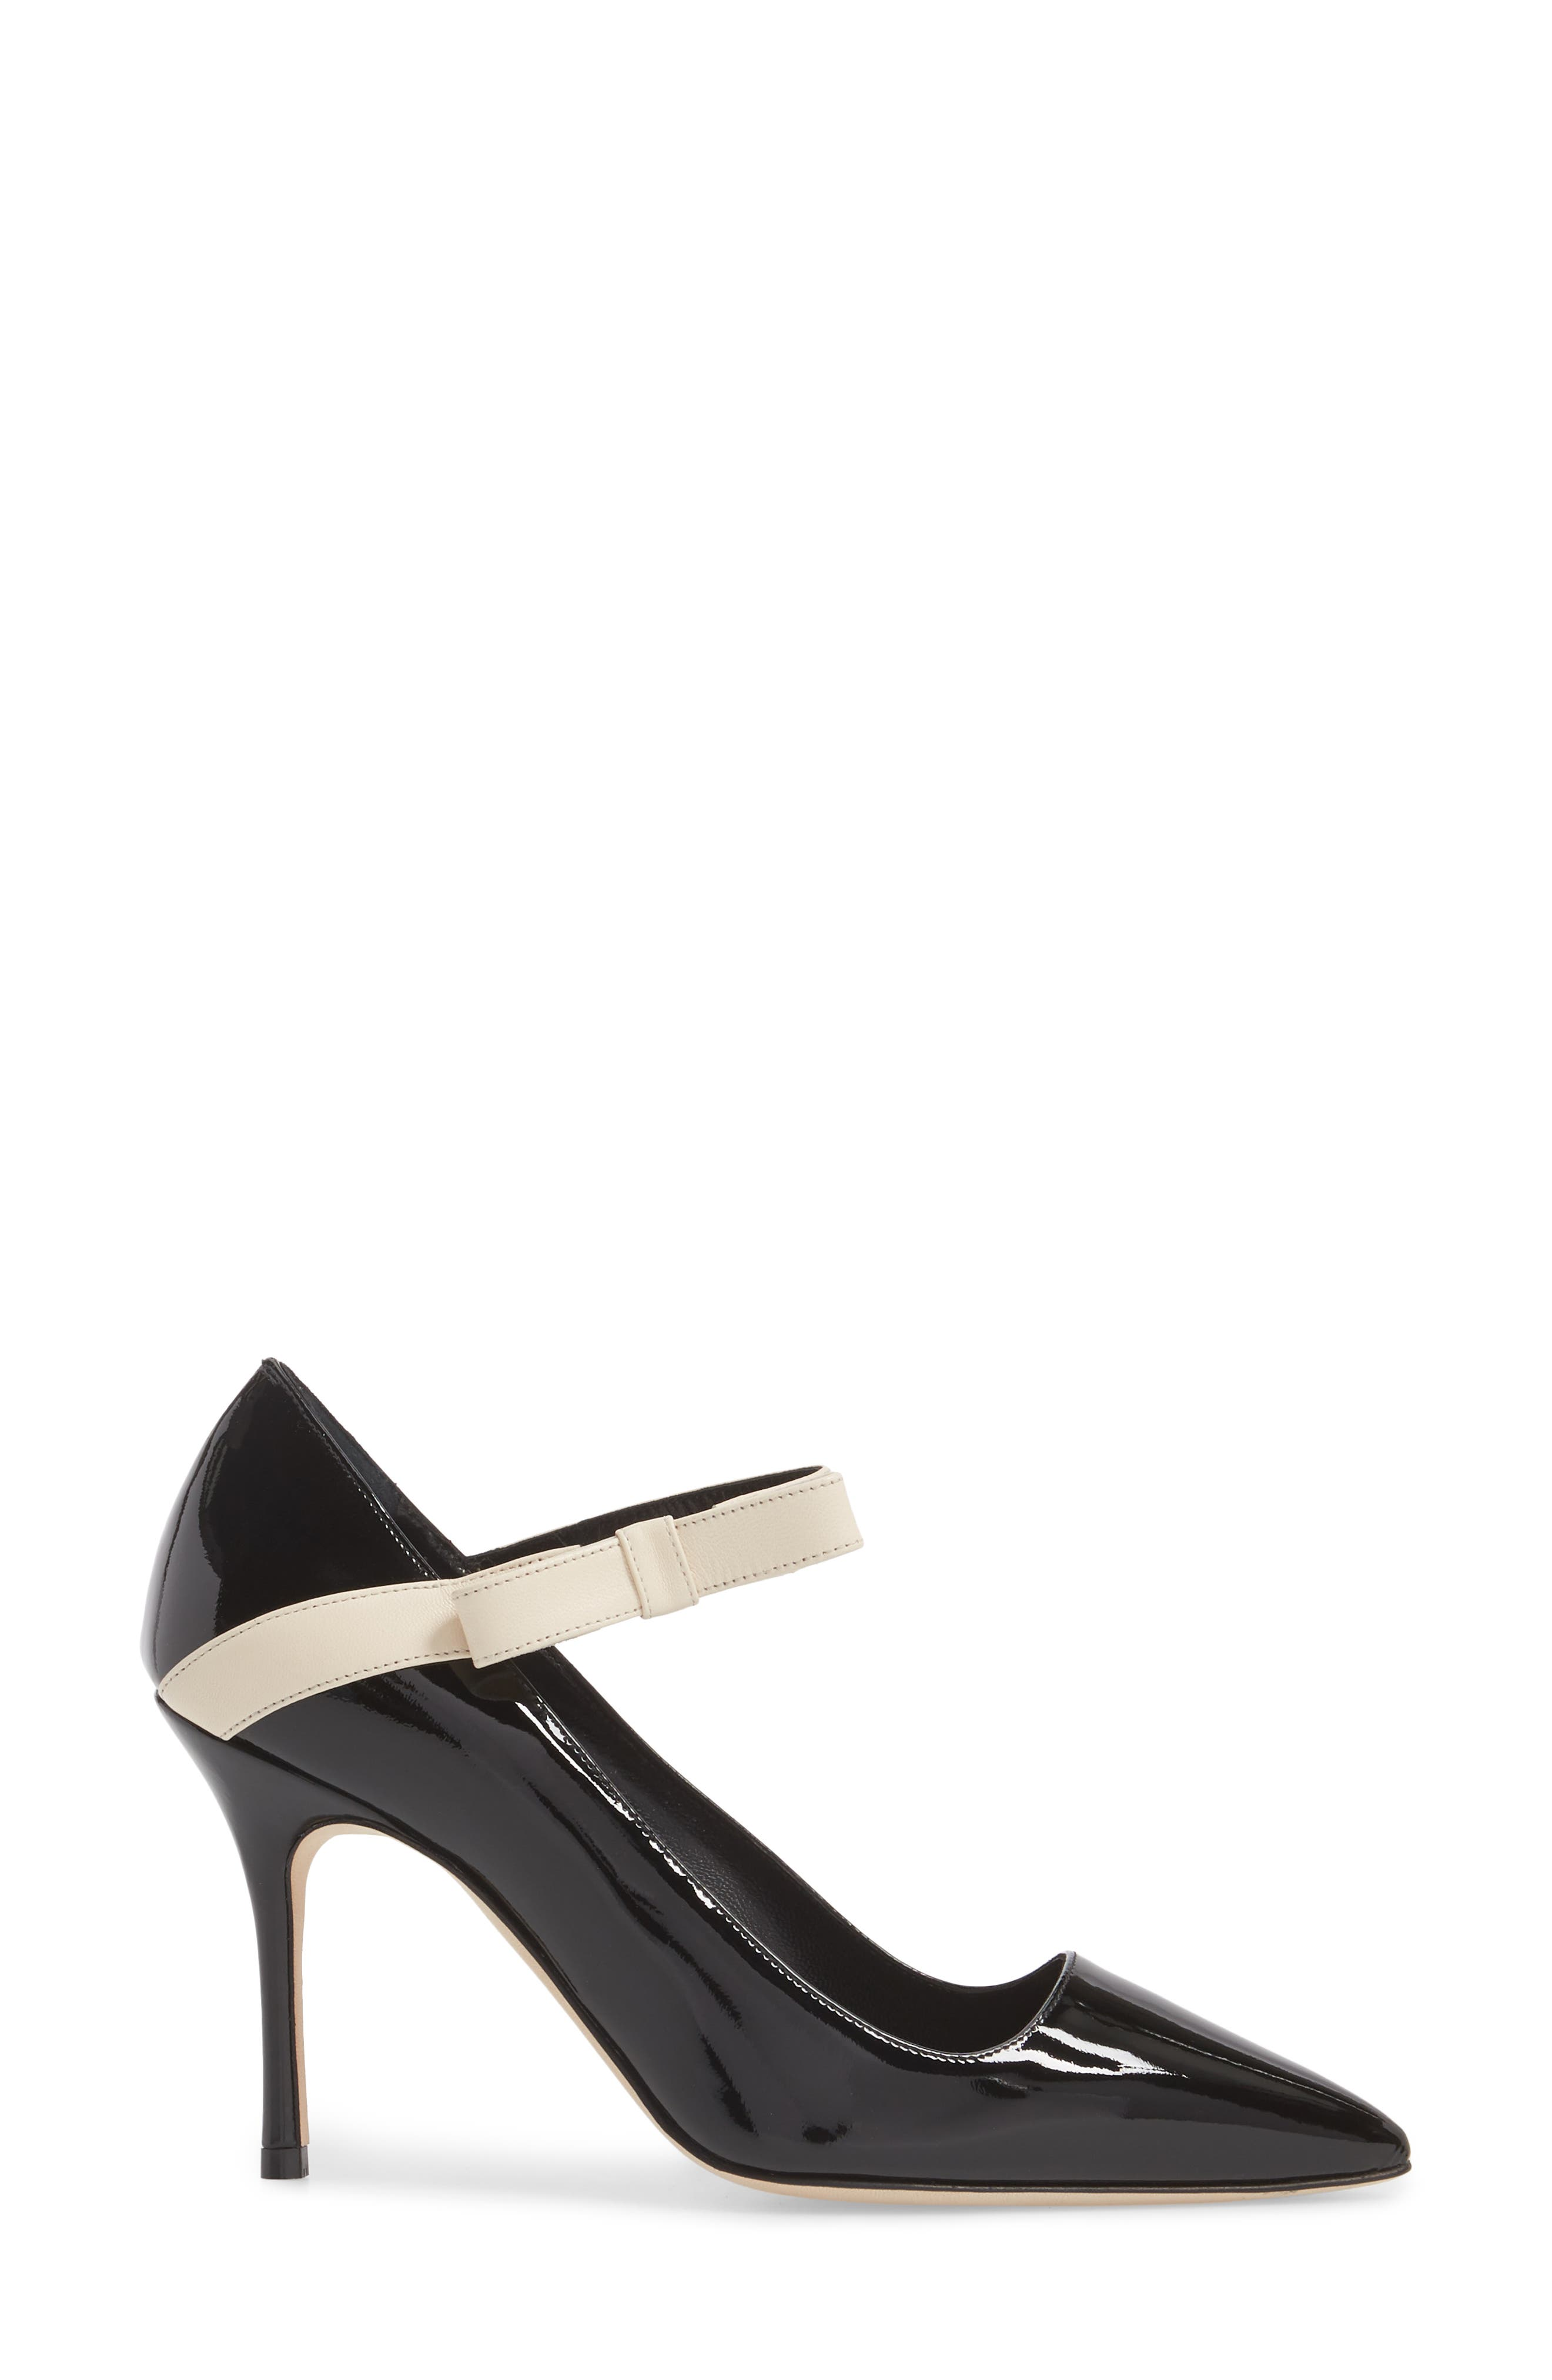 Immaculada Bow Pointy Toe Pump,                             Alternate thumbnail 3, color,                             Black/ White